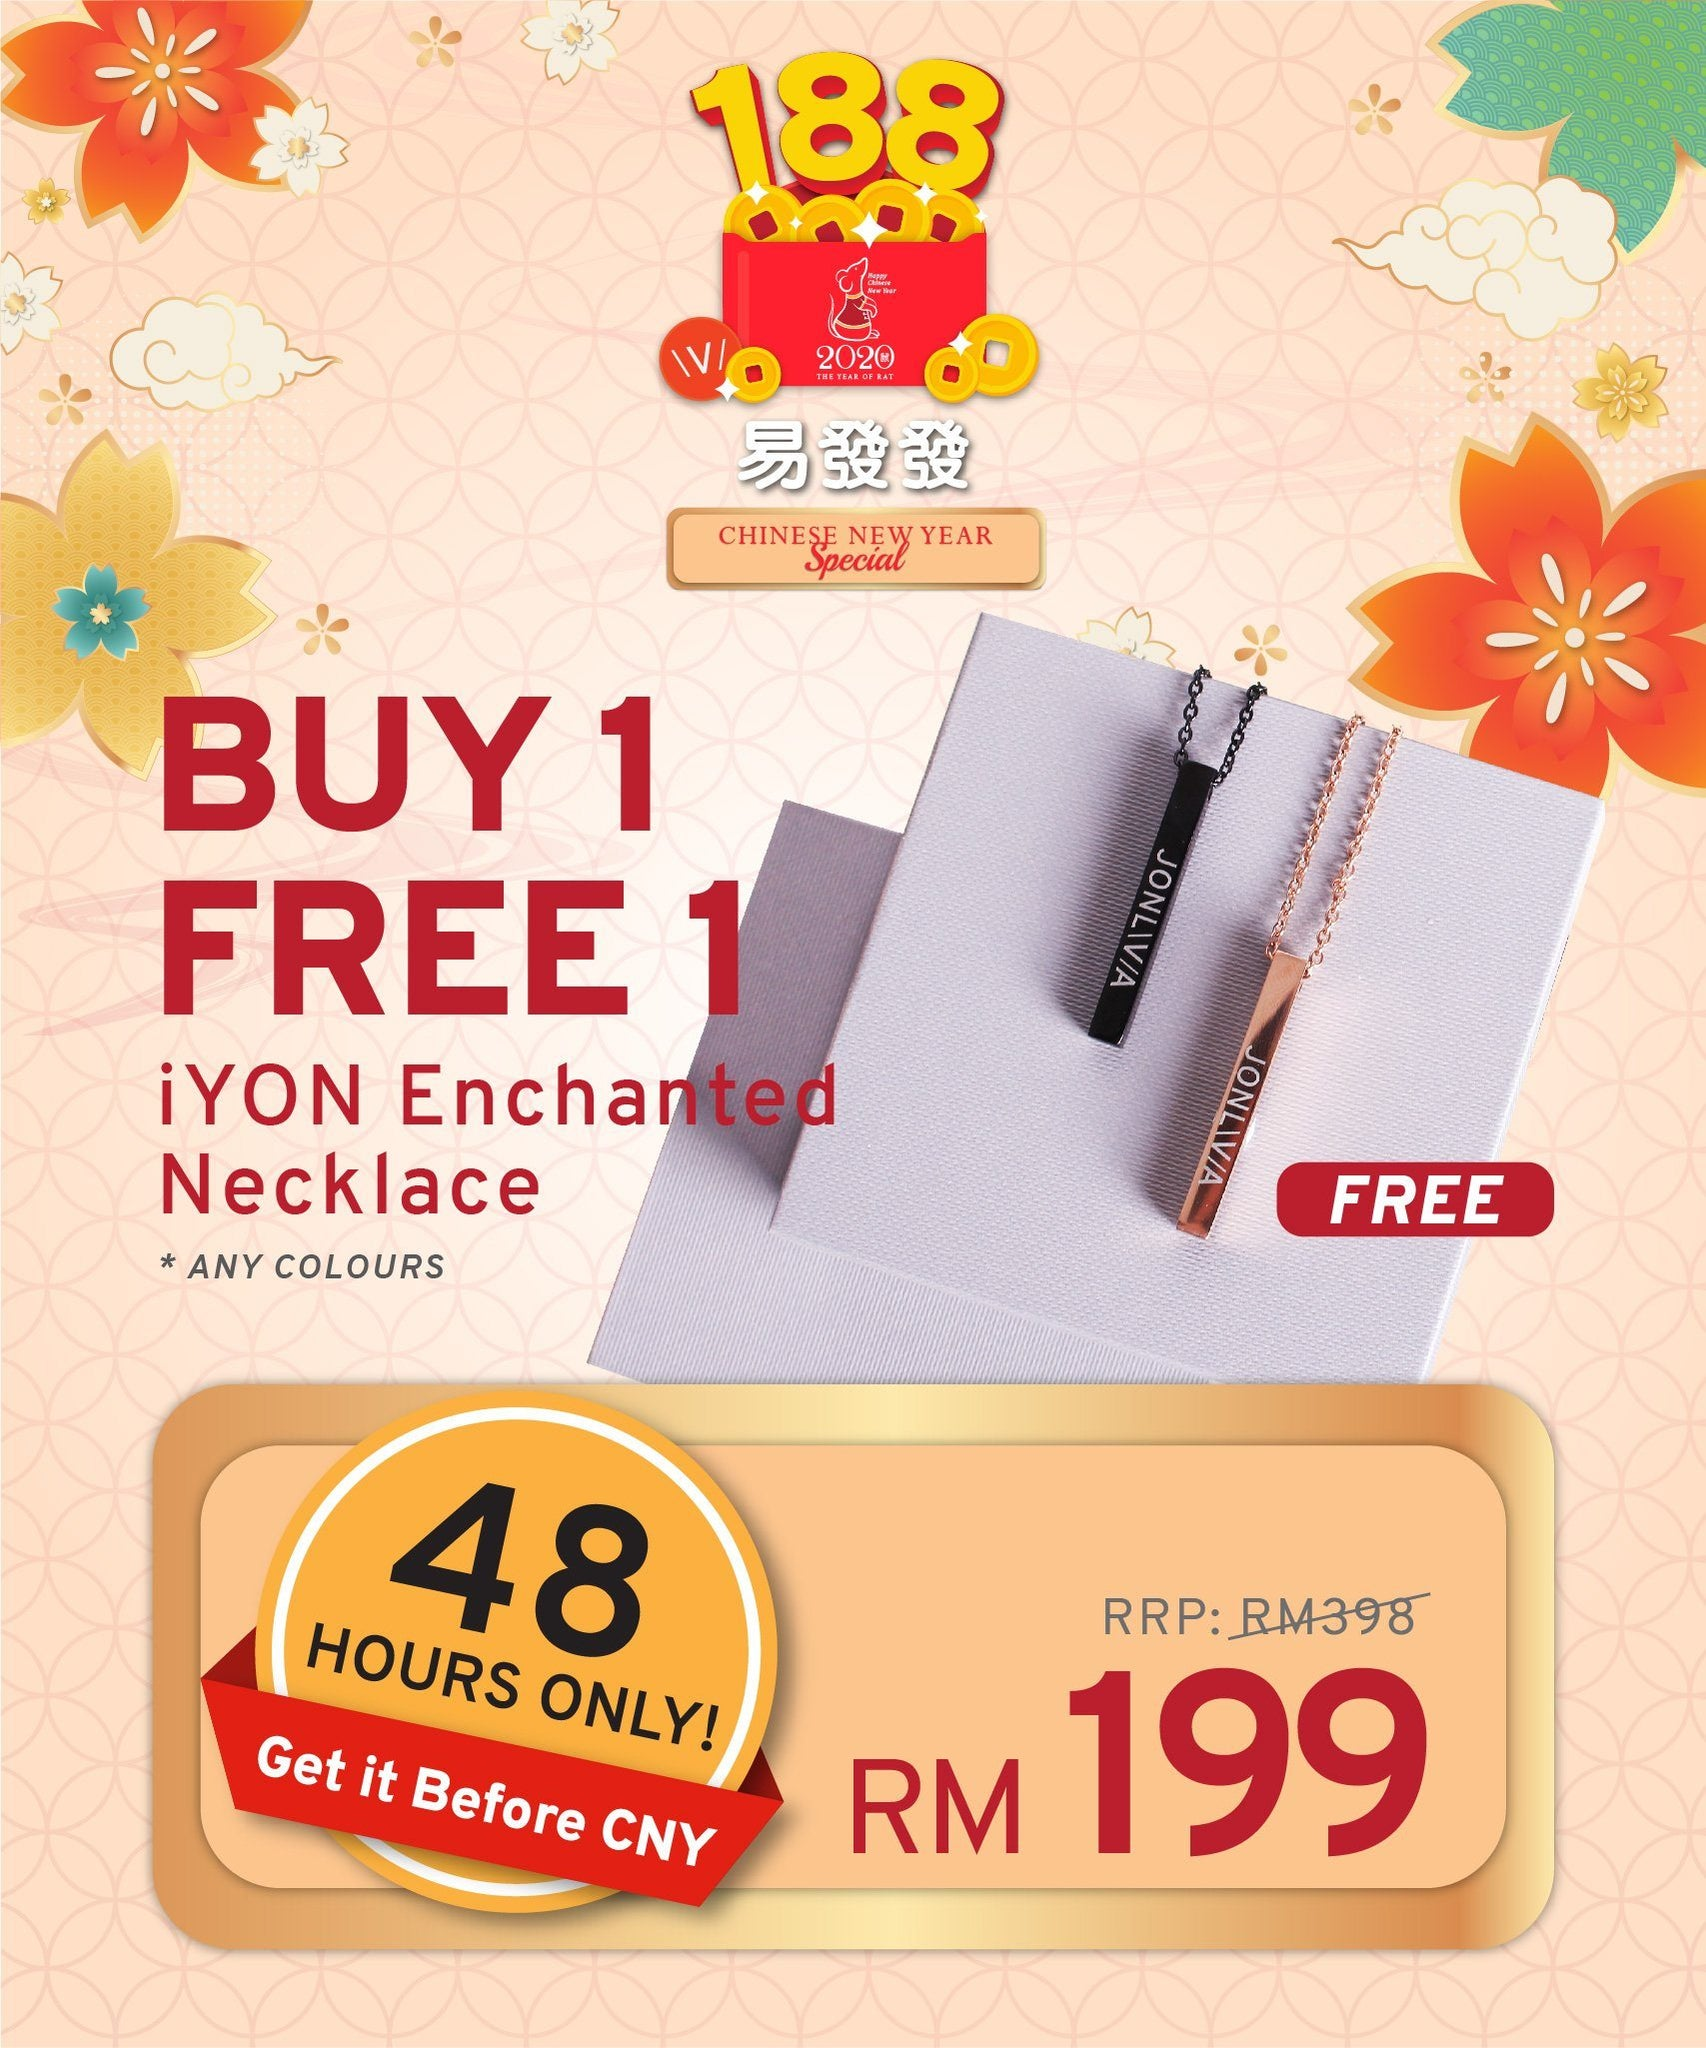 48 HOURS ONLY, BUY 1 FREE 1 iYON NECKLACE Enchanted - Get it Before CNY